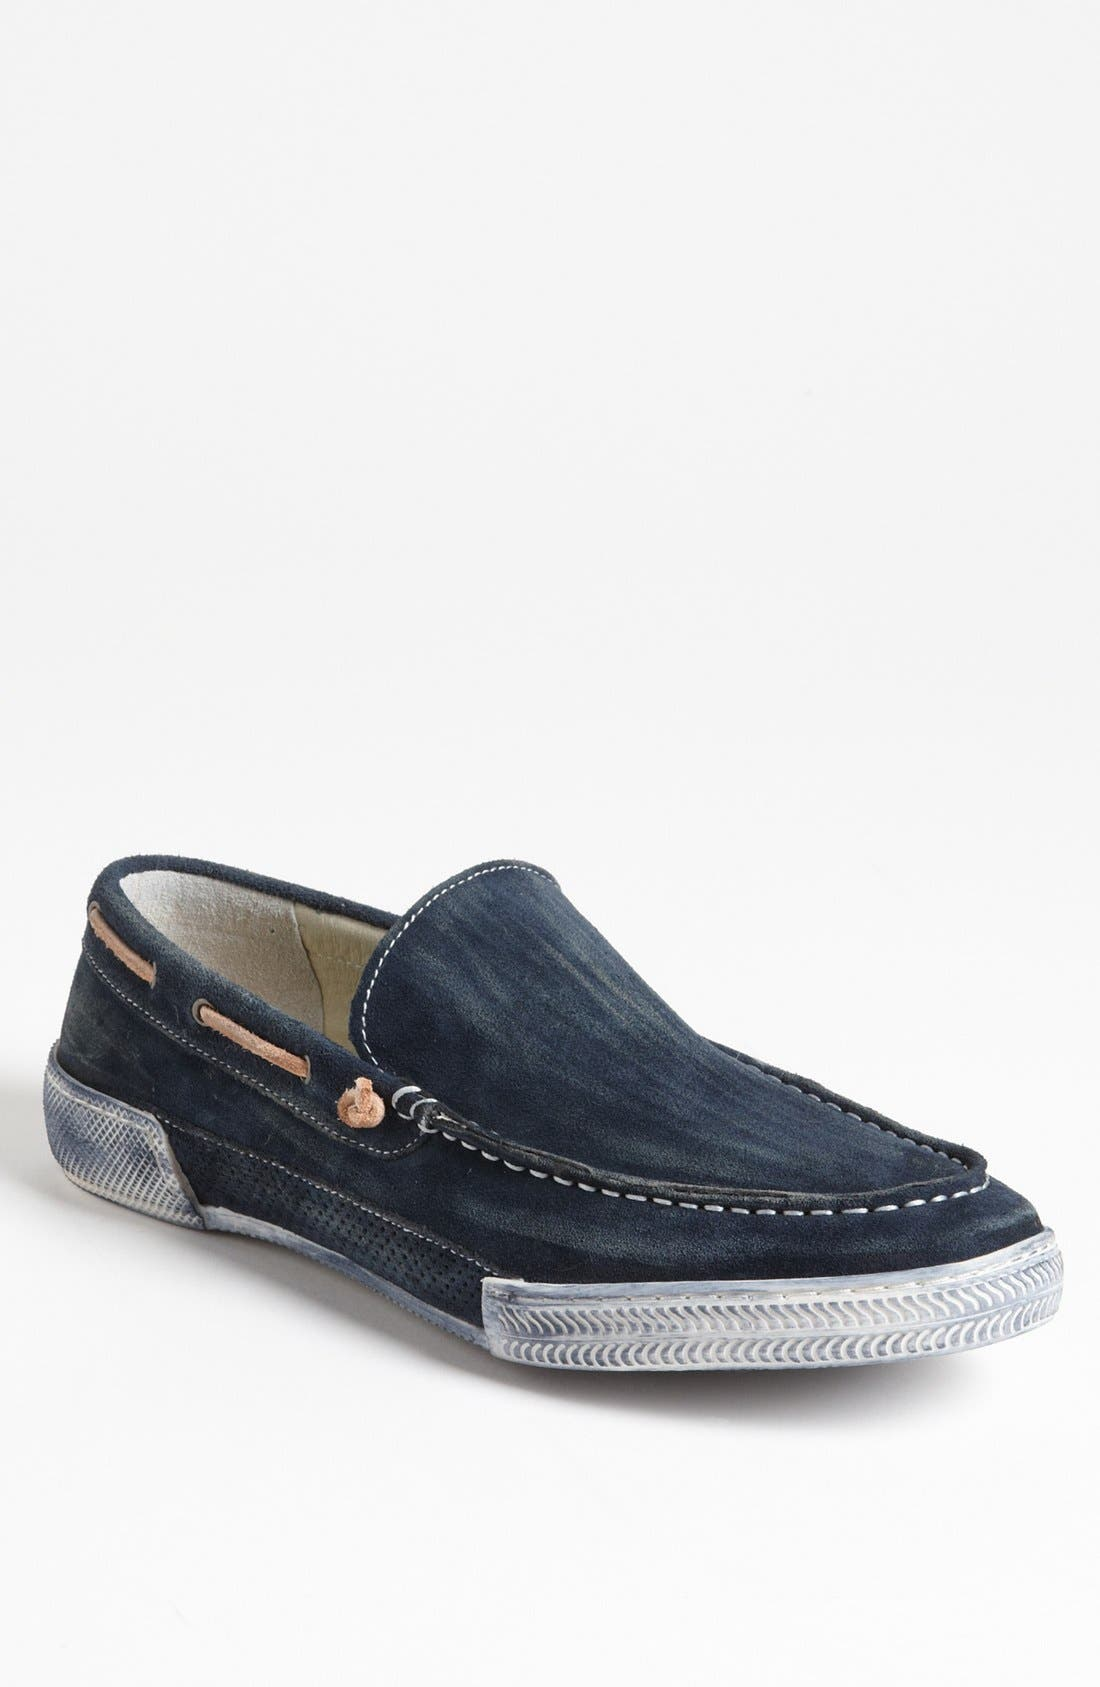 Alternate Image 1 Selected - Rogue 'Rascal' Boat Shoe